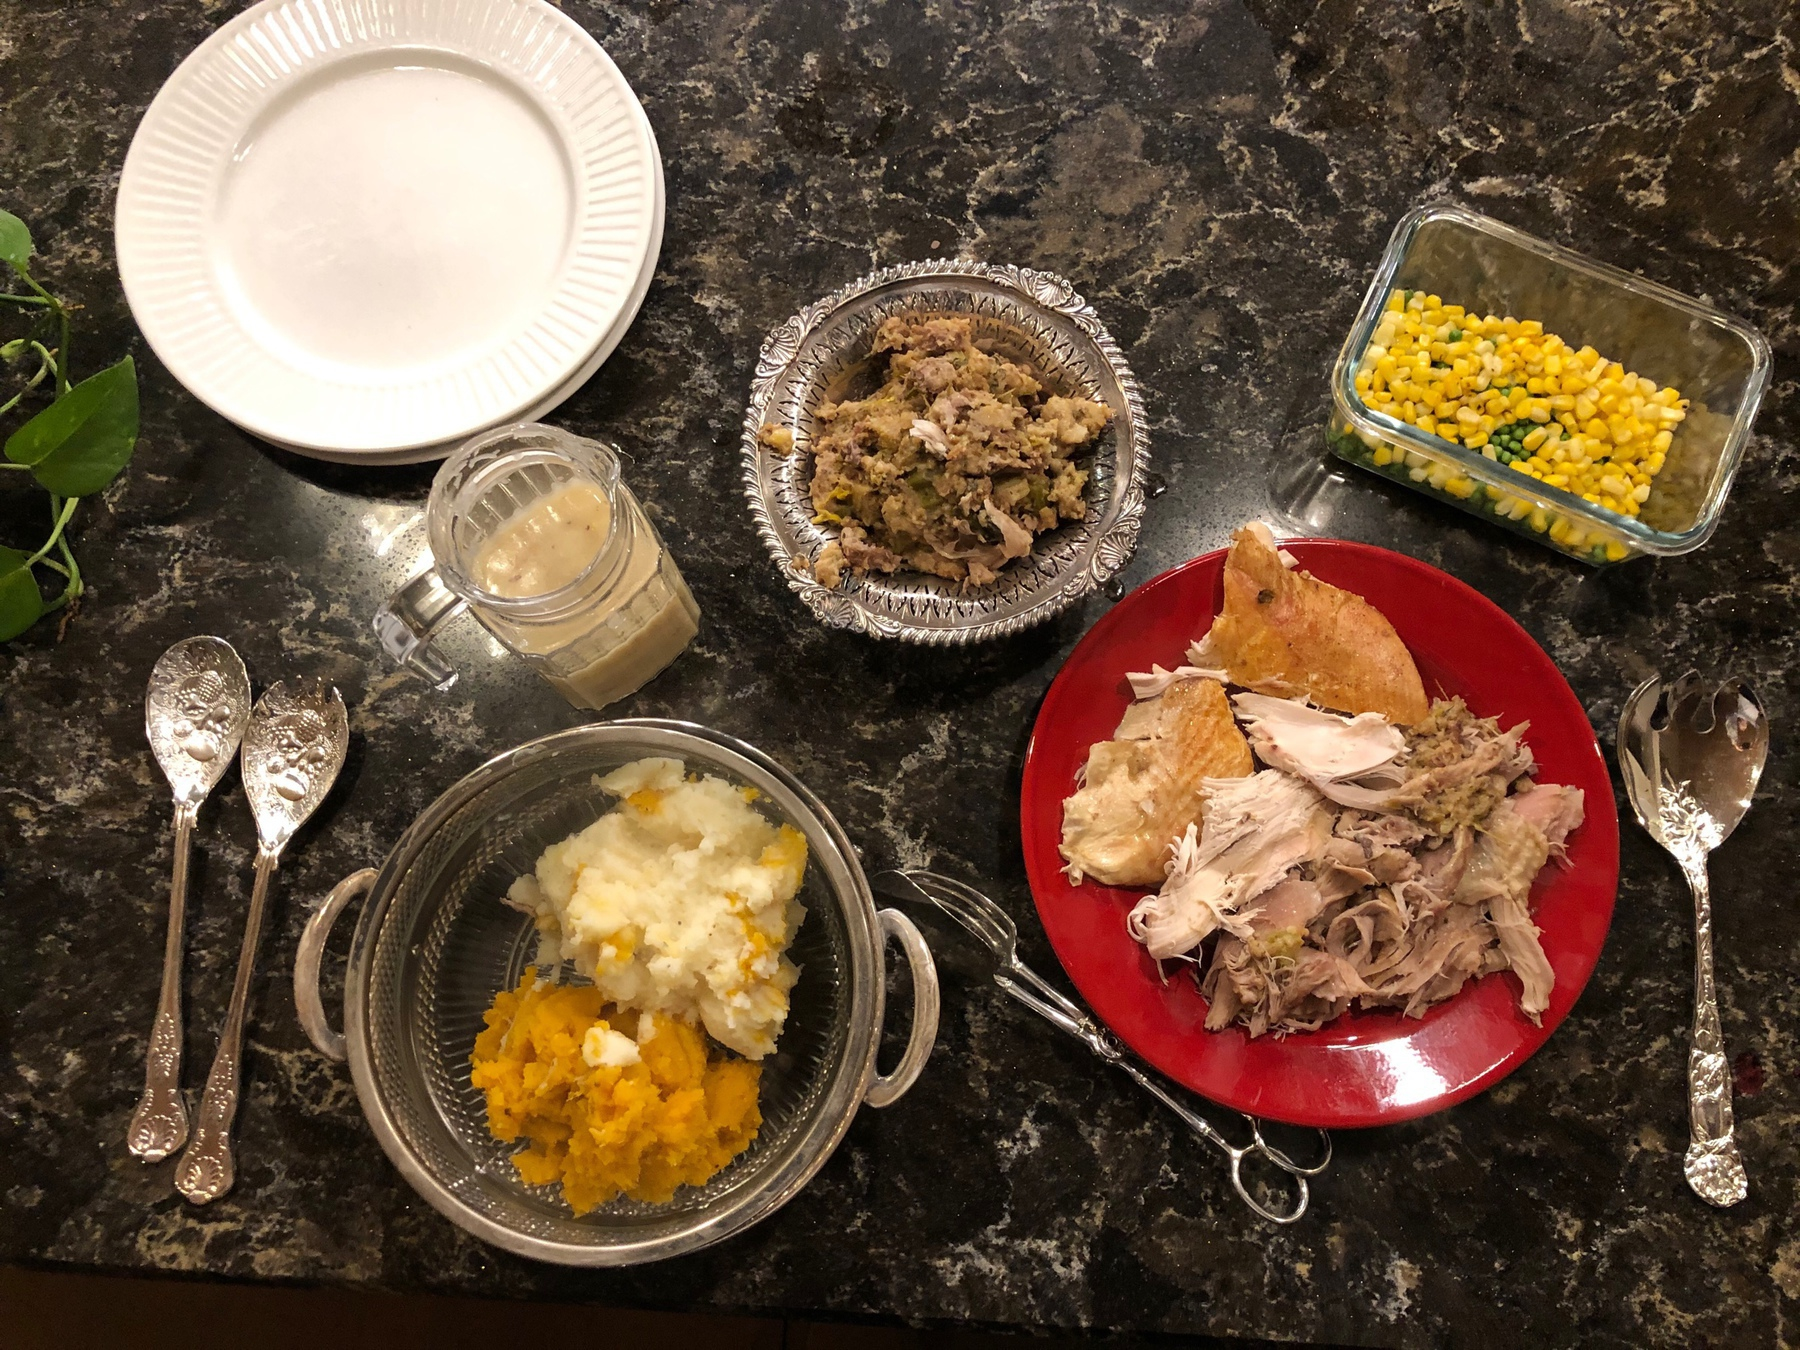 bowls and plates of turkey, dressing, sweet and white potatoes, corn and peas